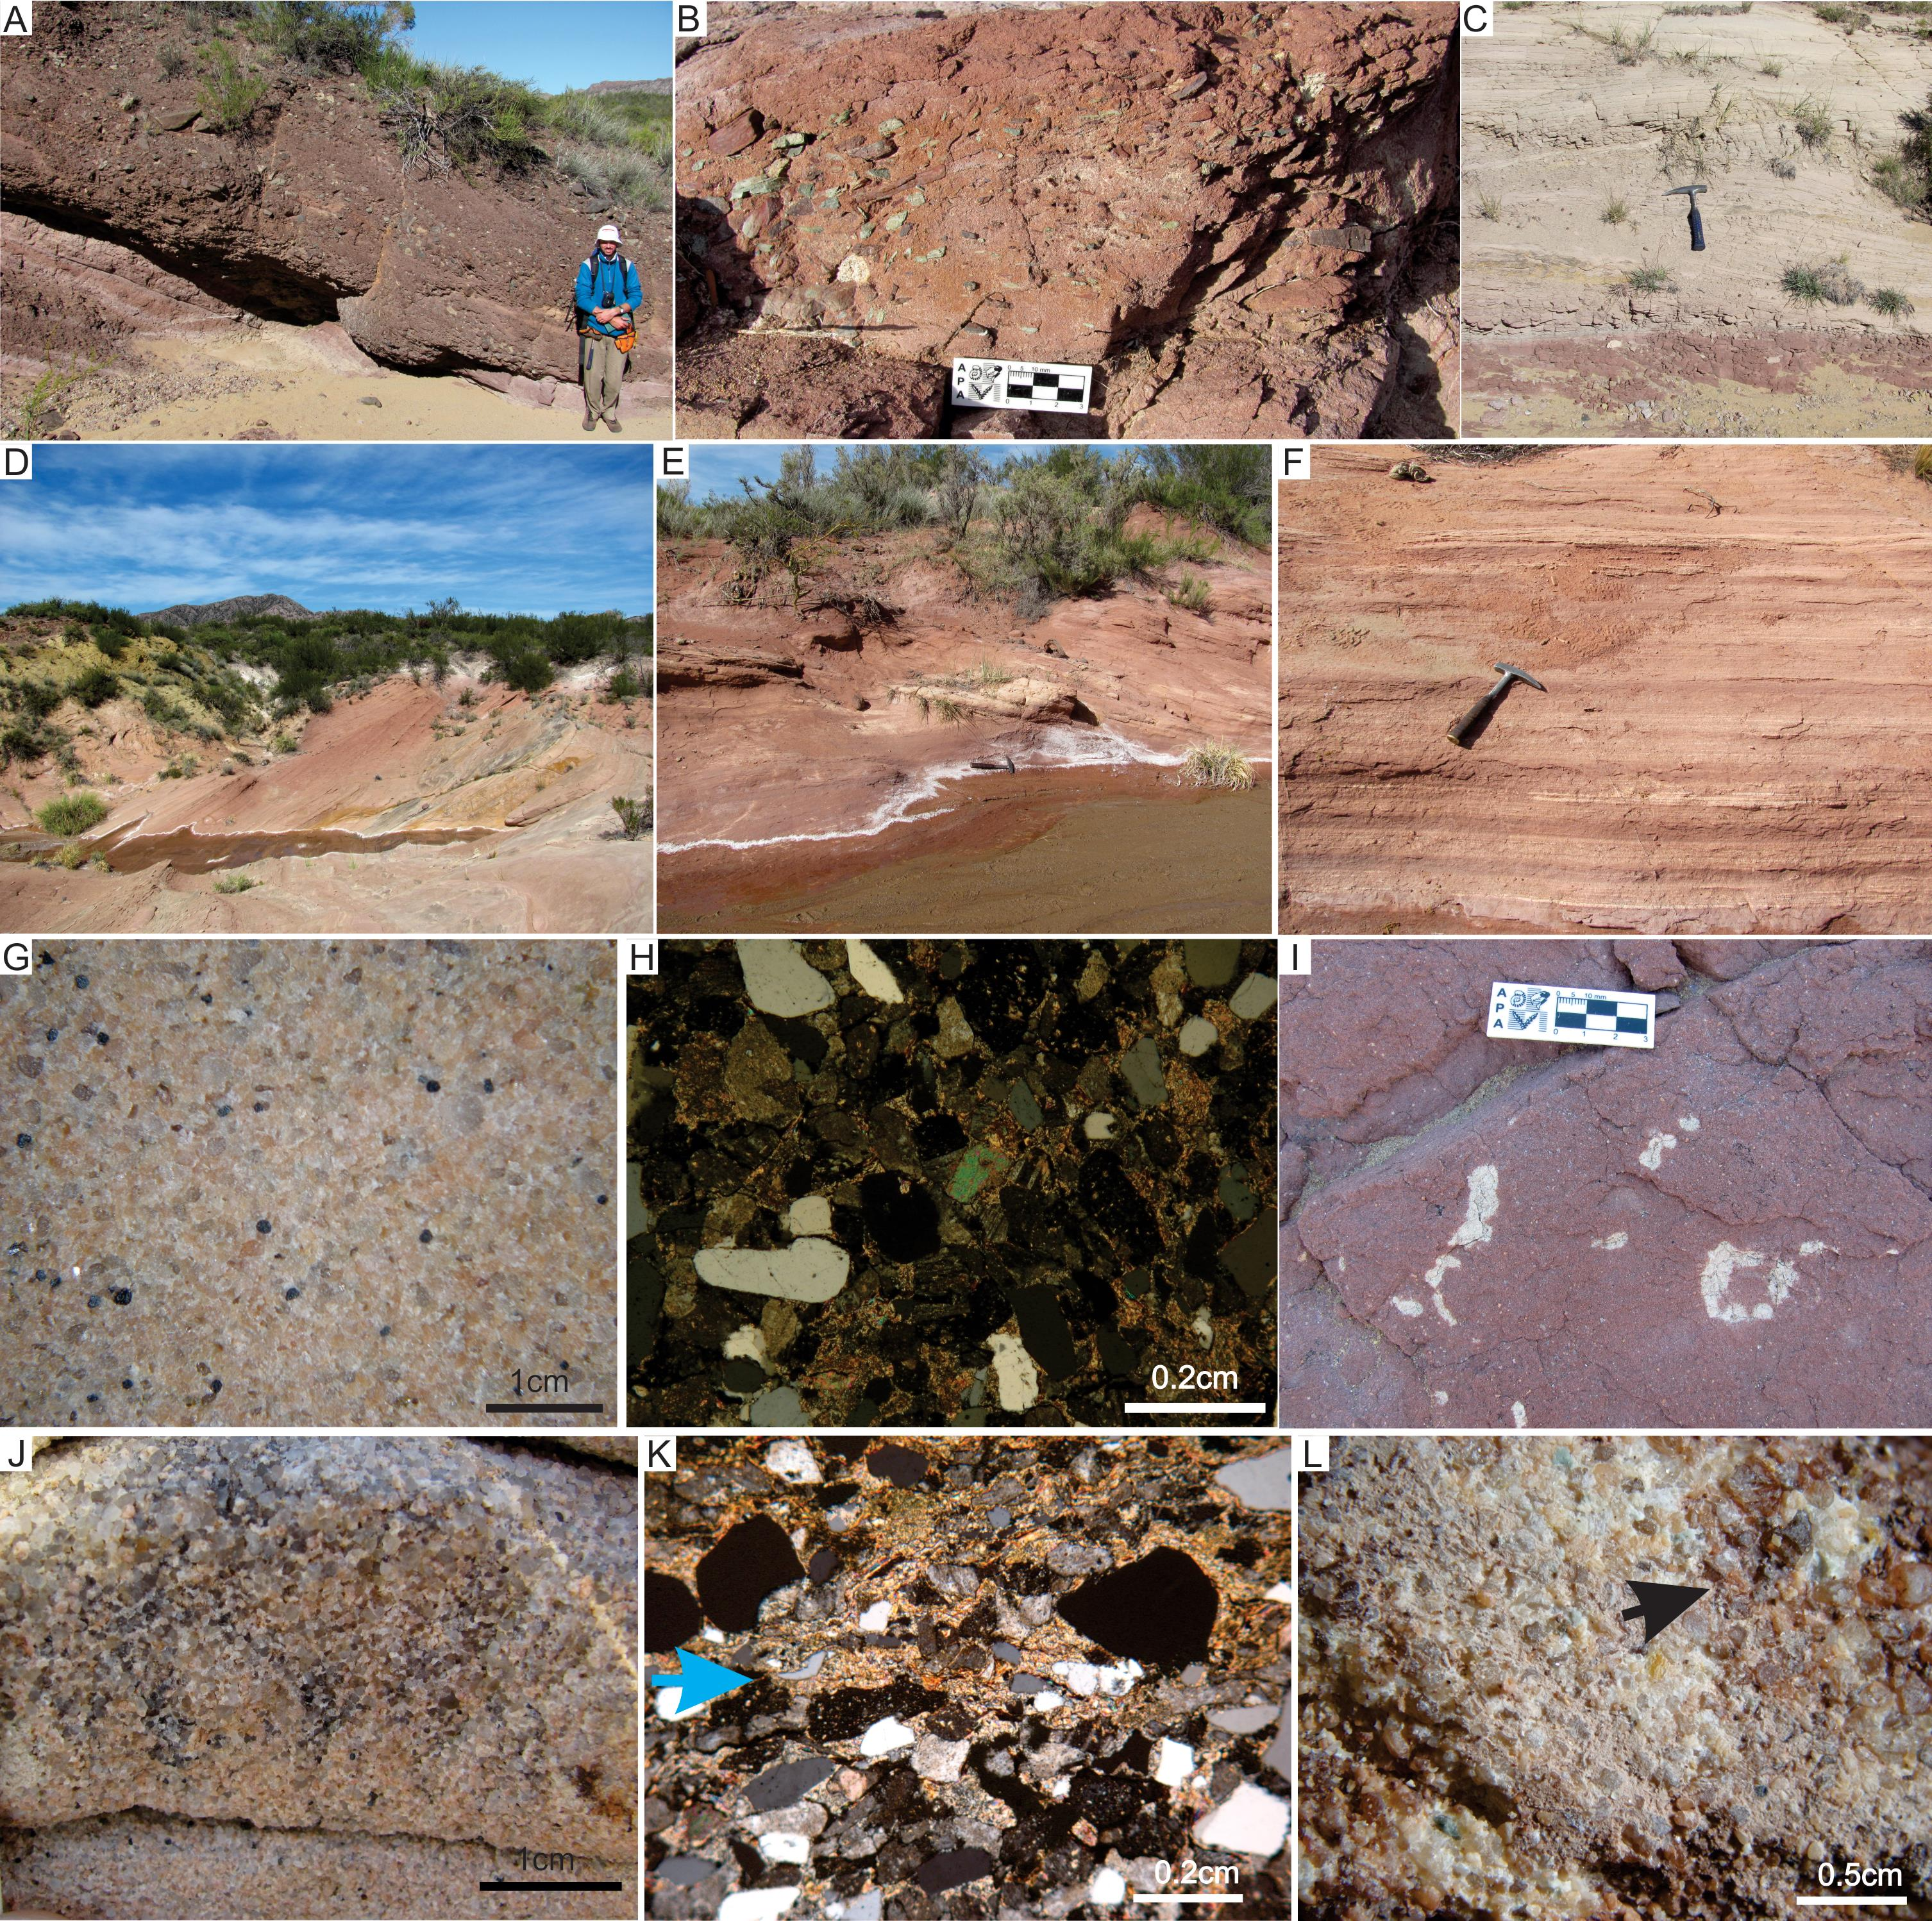 TETRAPOD TRACKS TAPHONOMY IN EOLIAN FACIES FROM THE PERMIAN